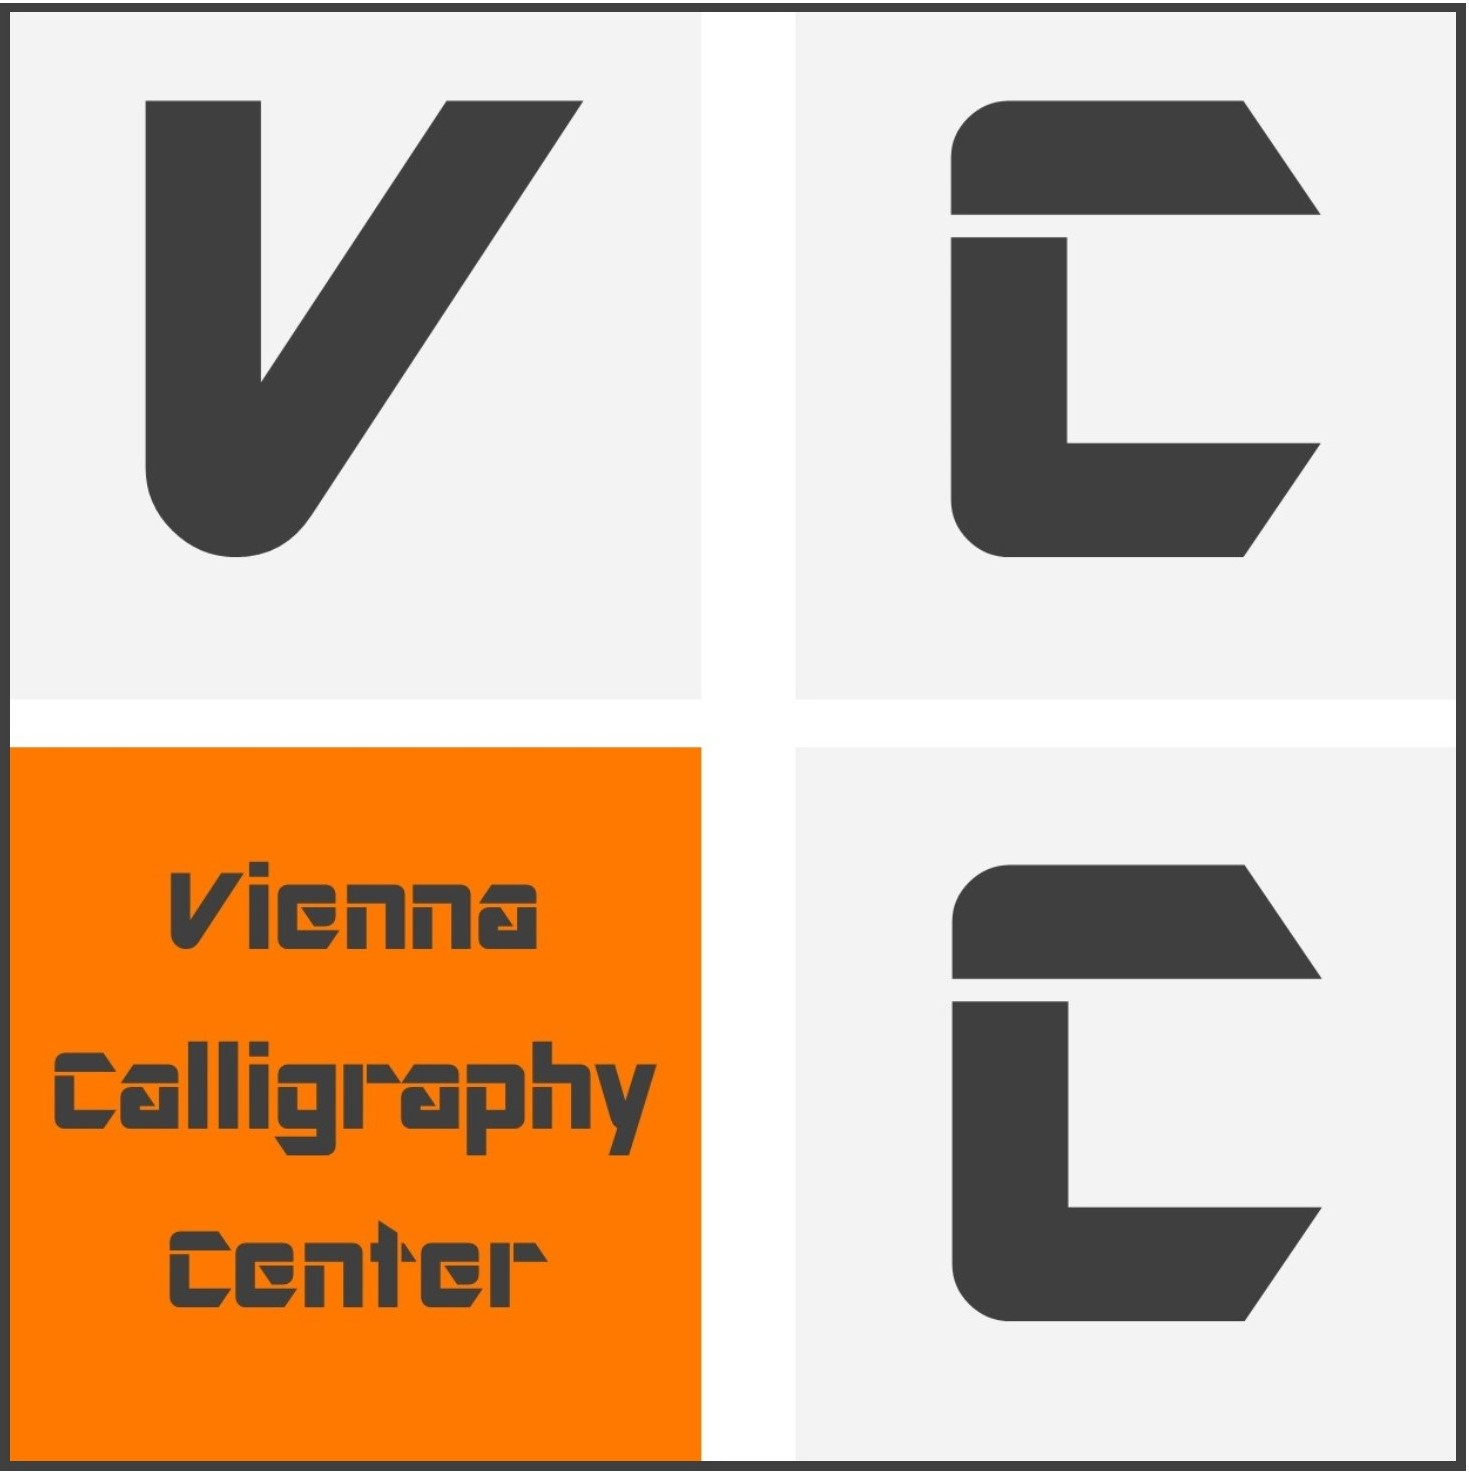 Vienna Calligraphy Center